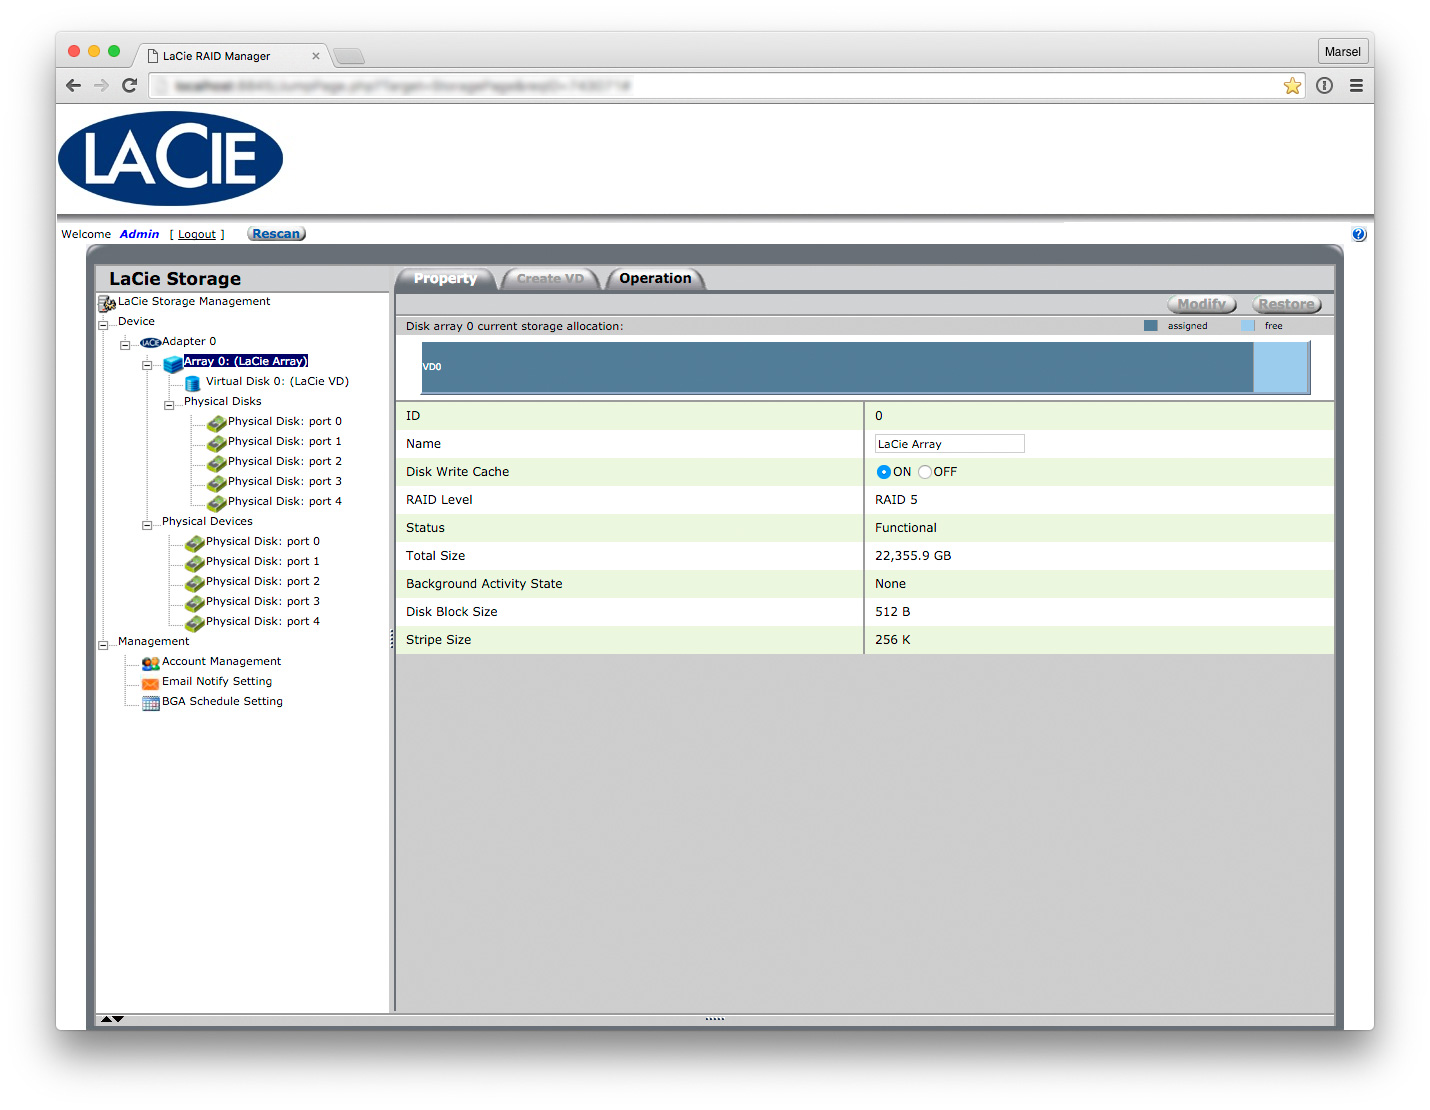 The user interface of the LaCie RAID Manager.